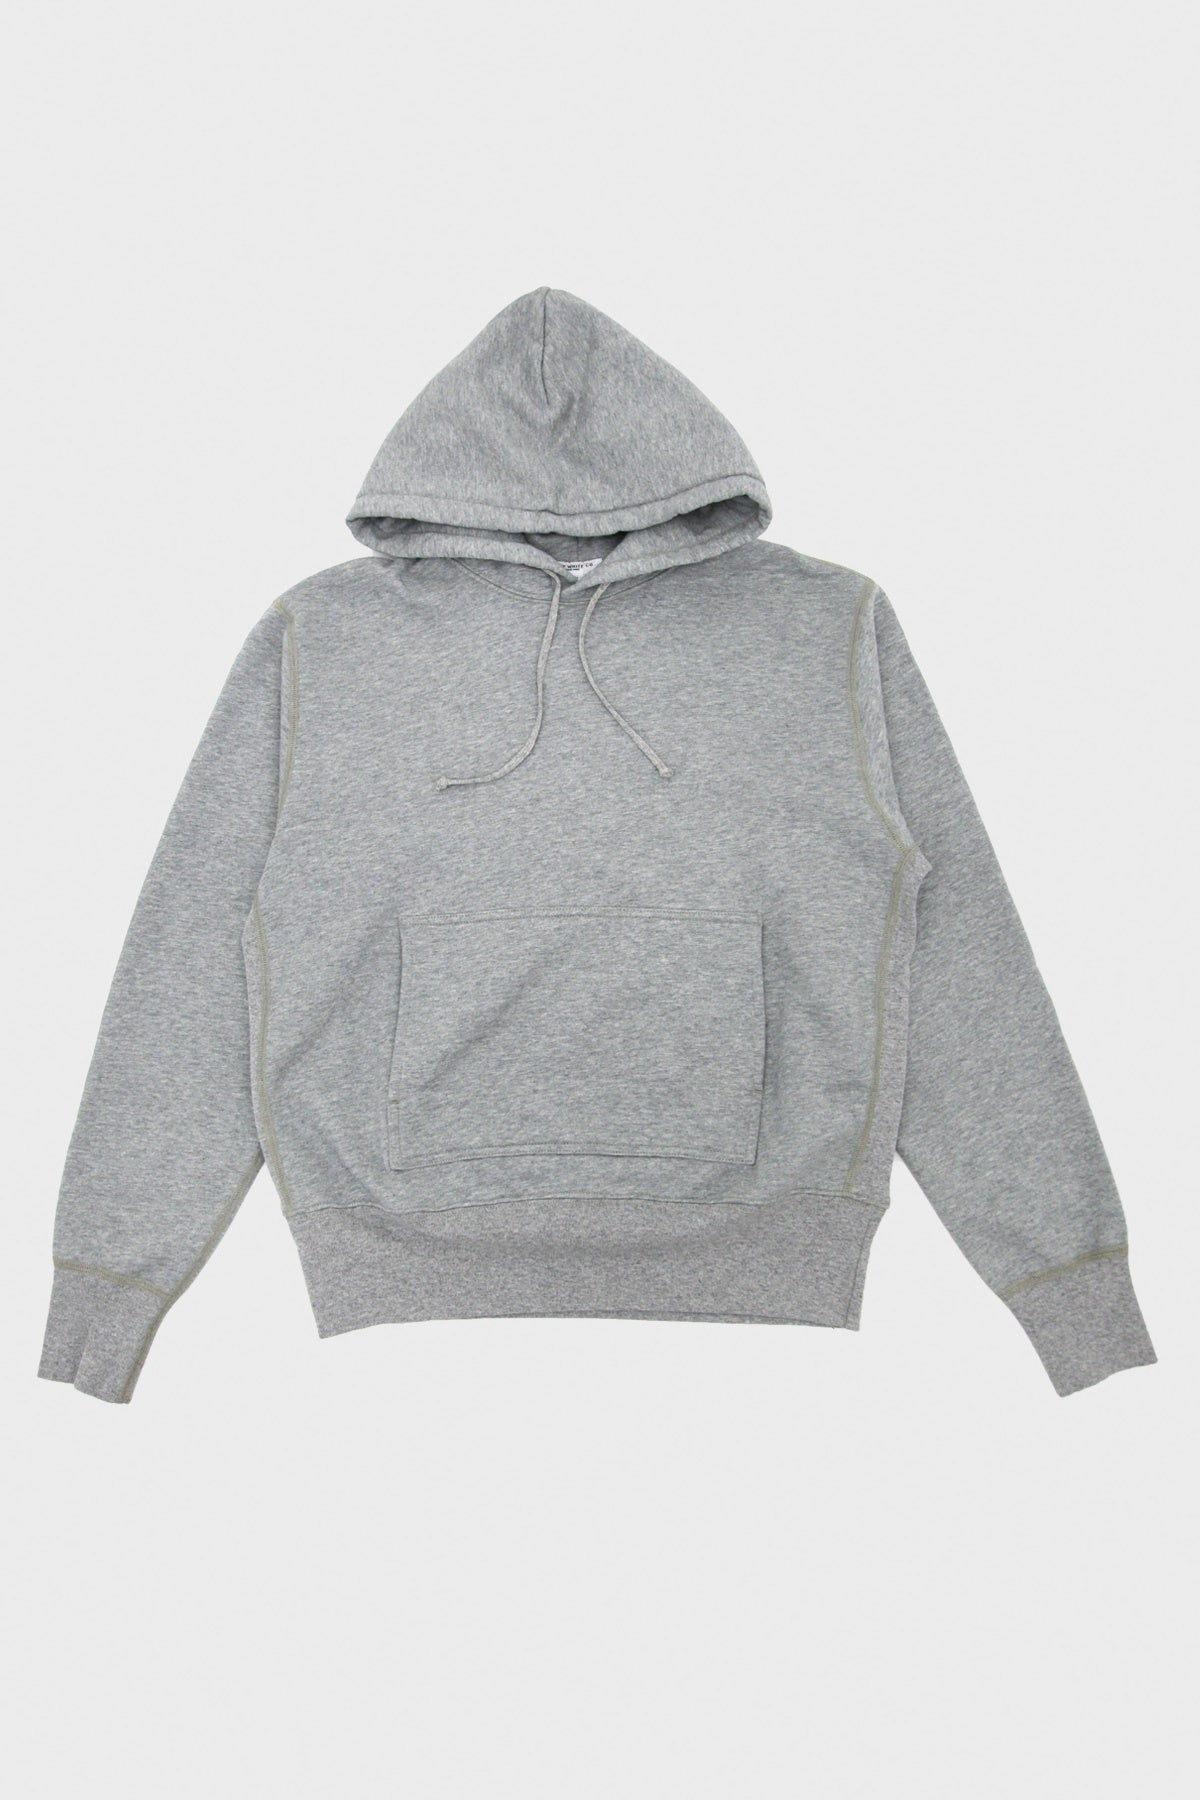 Lady White Co. - Hoodie - Heather Grey - Canoe Club